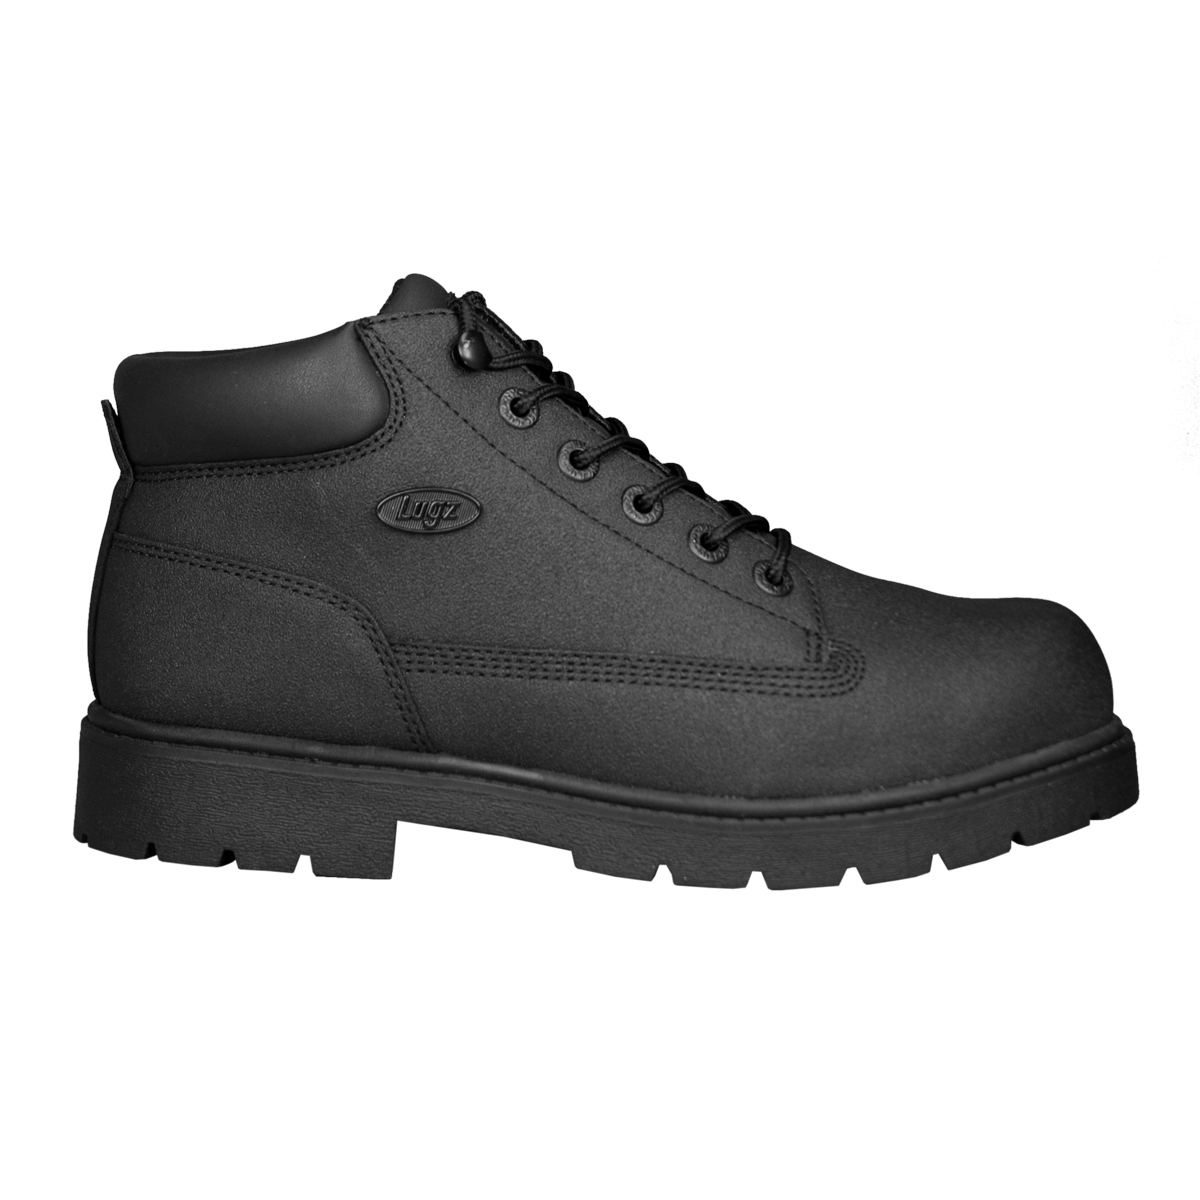 Lugz Drifter Scuff Proof SR Mens Boot Black